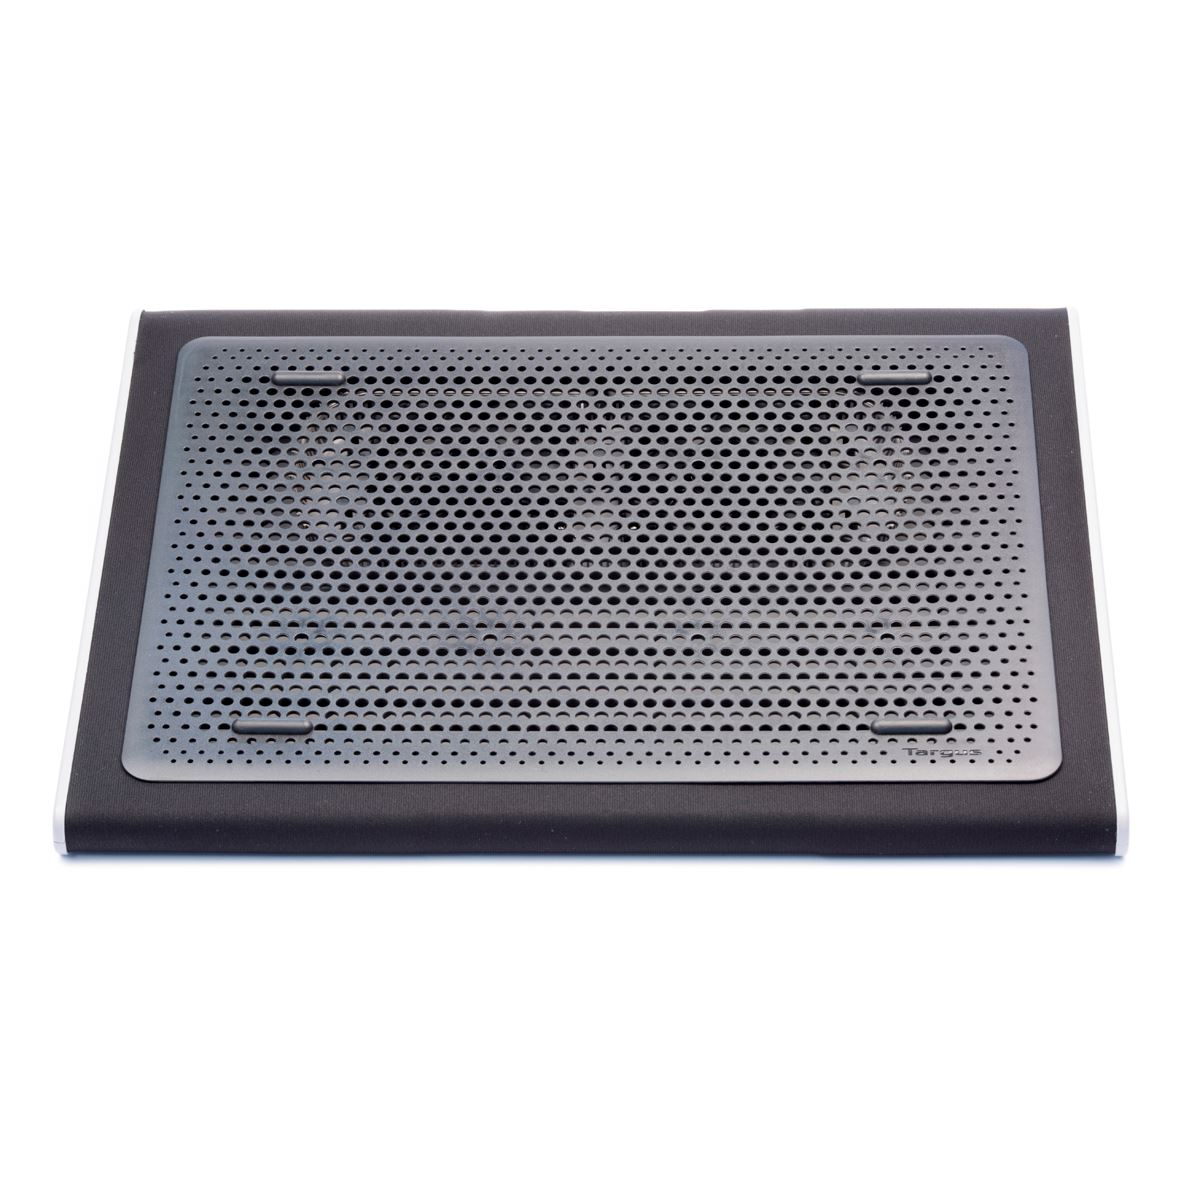 Sanoxy 2 USB Port 5 Angle Laptop Notebook Cooling Pad and Stand ...